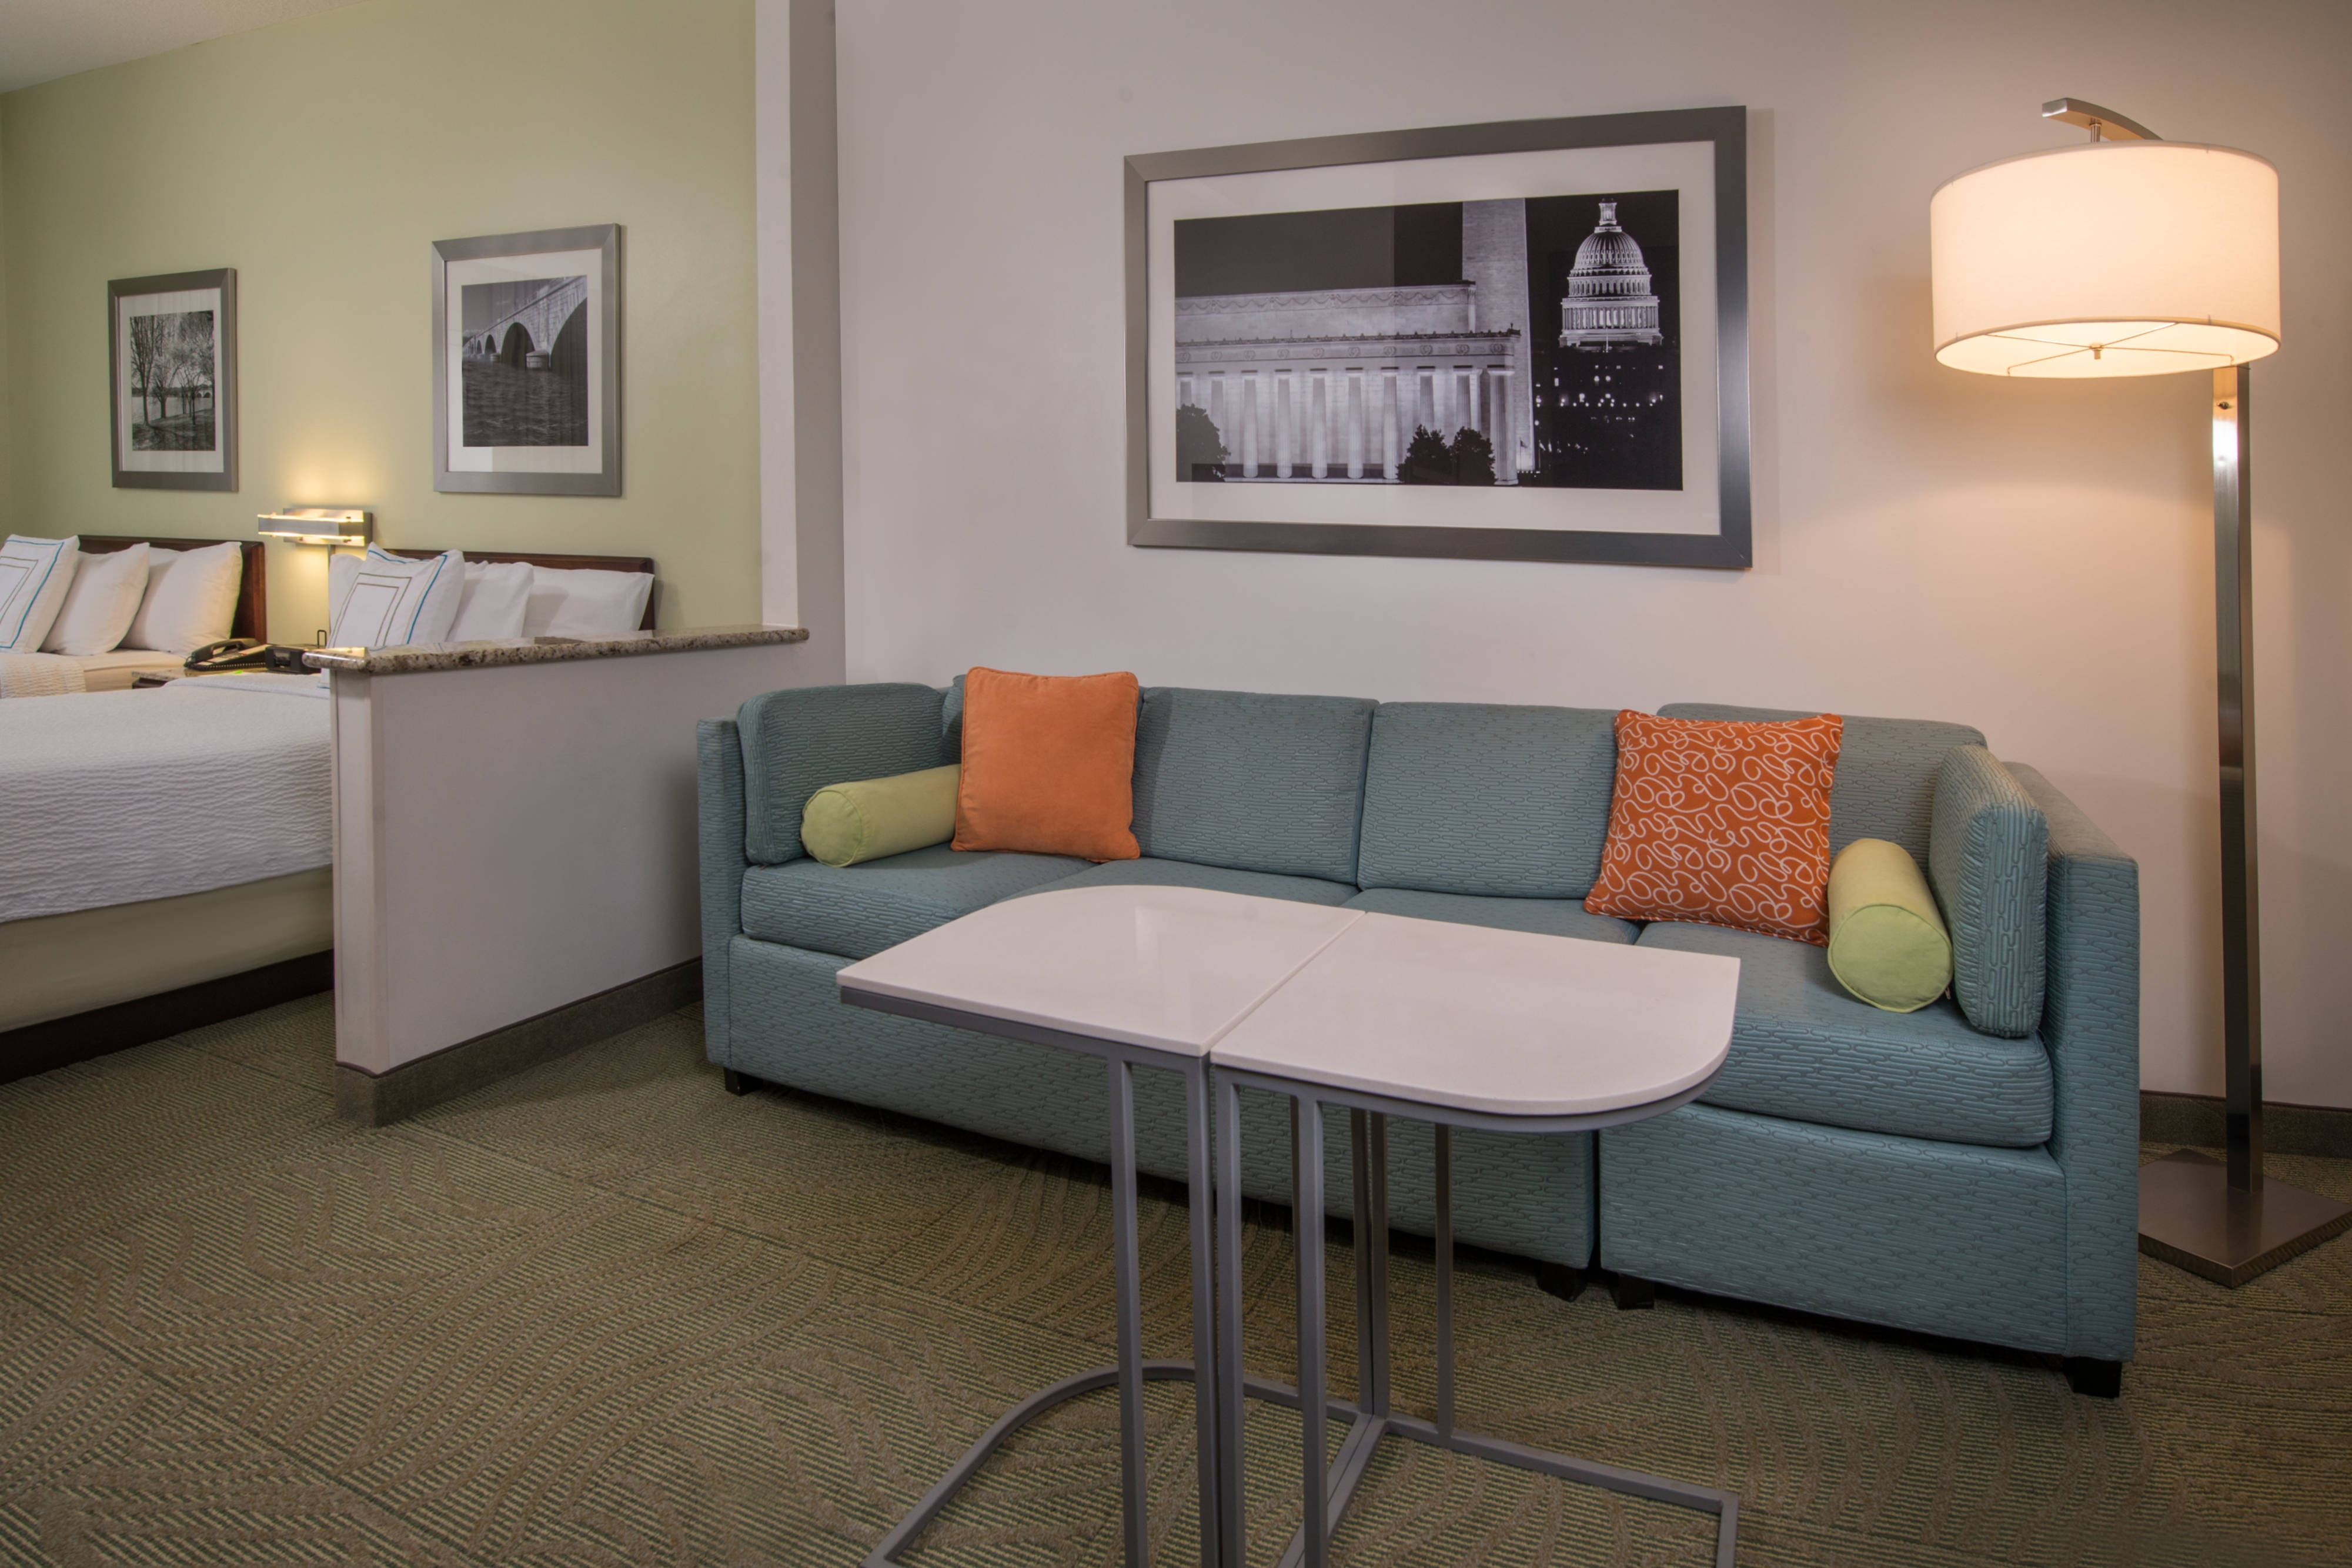 SpringHill Suites Reston Living Room